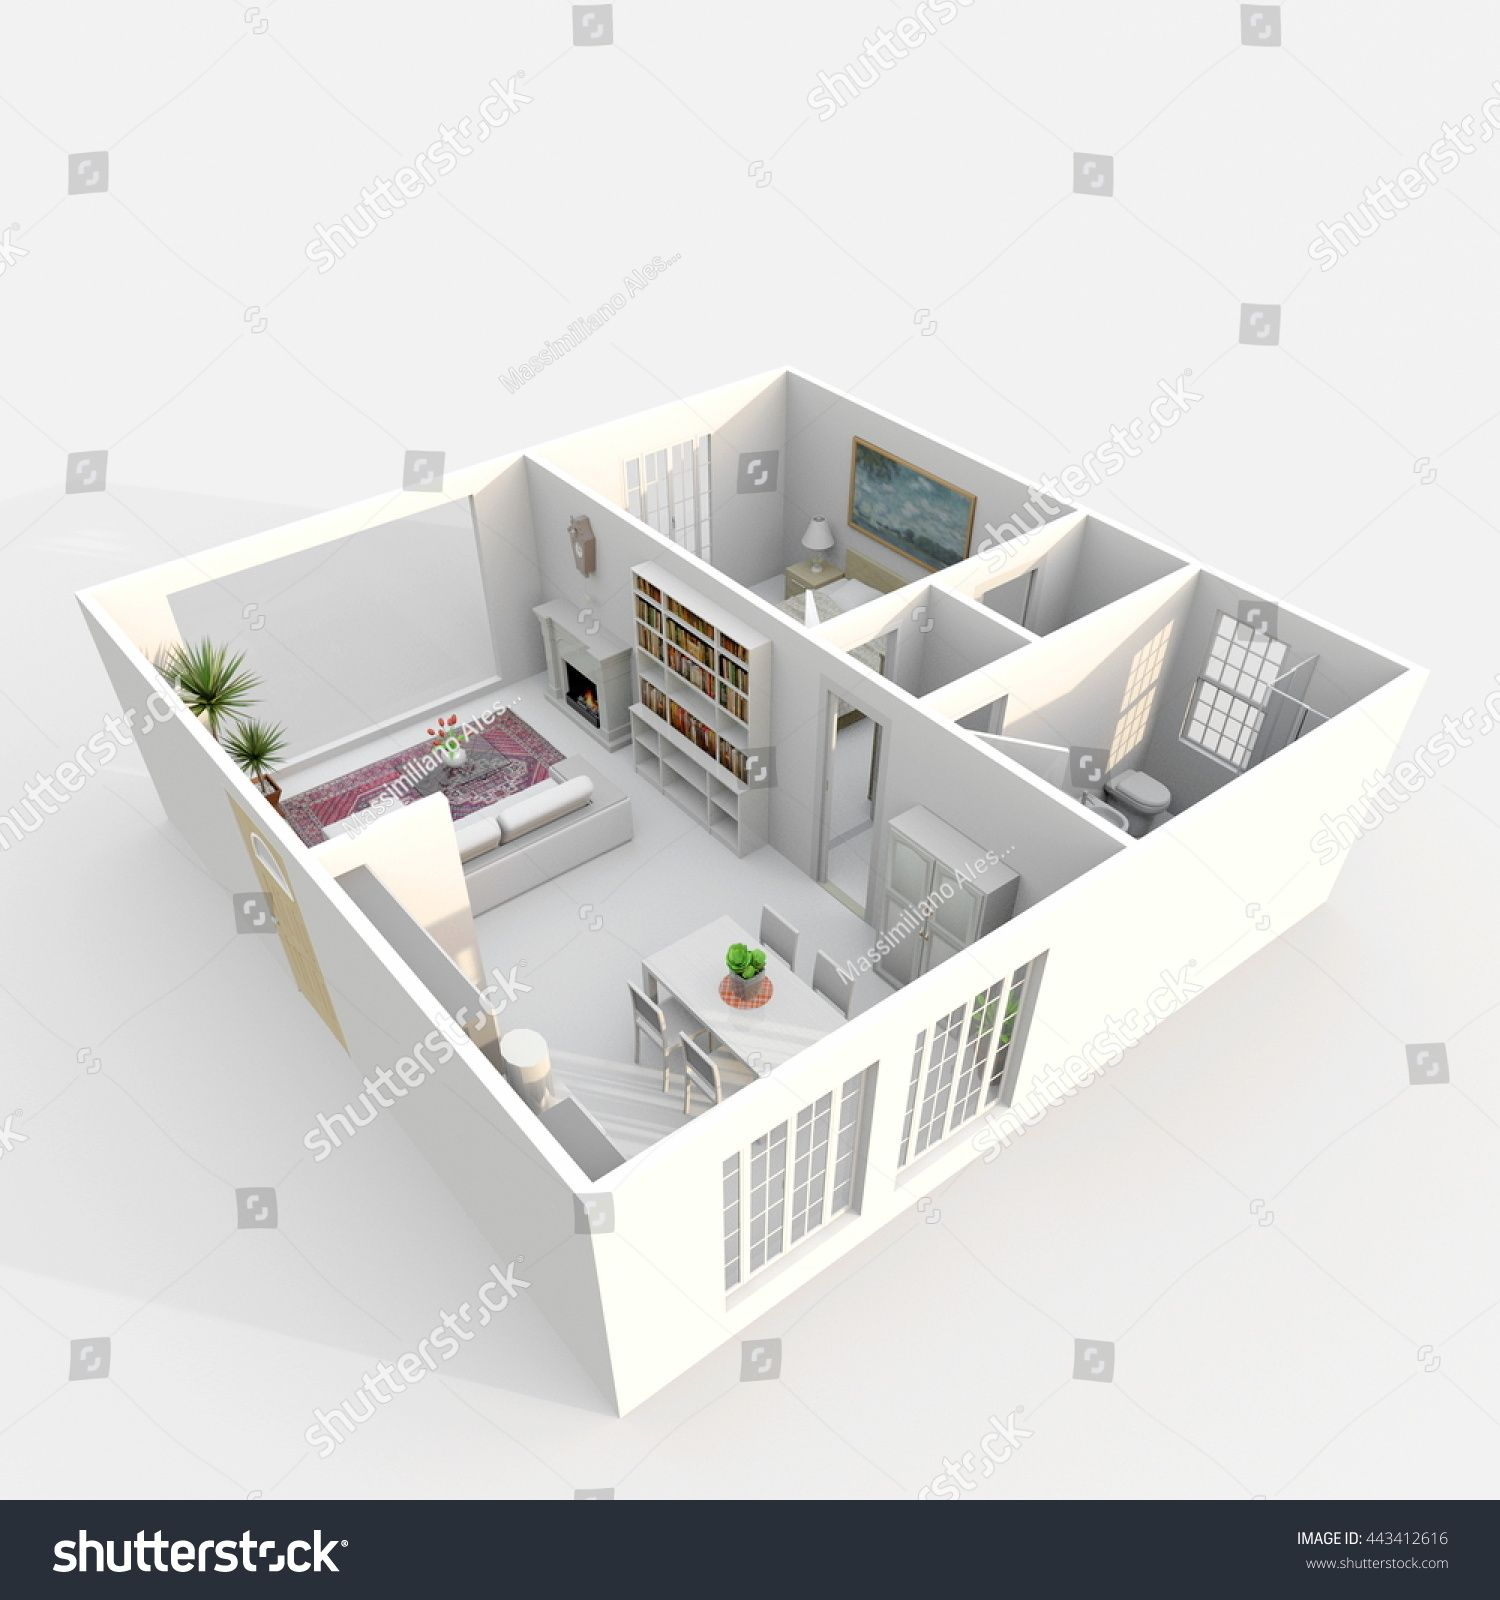 3d Interior Rendering Perspective View Of Furnished Home